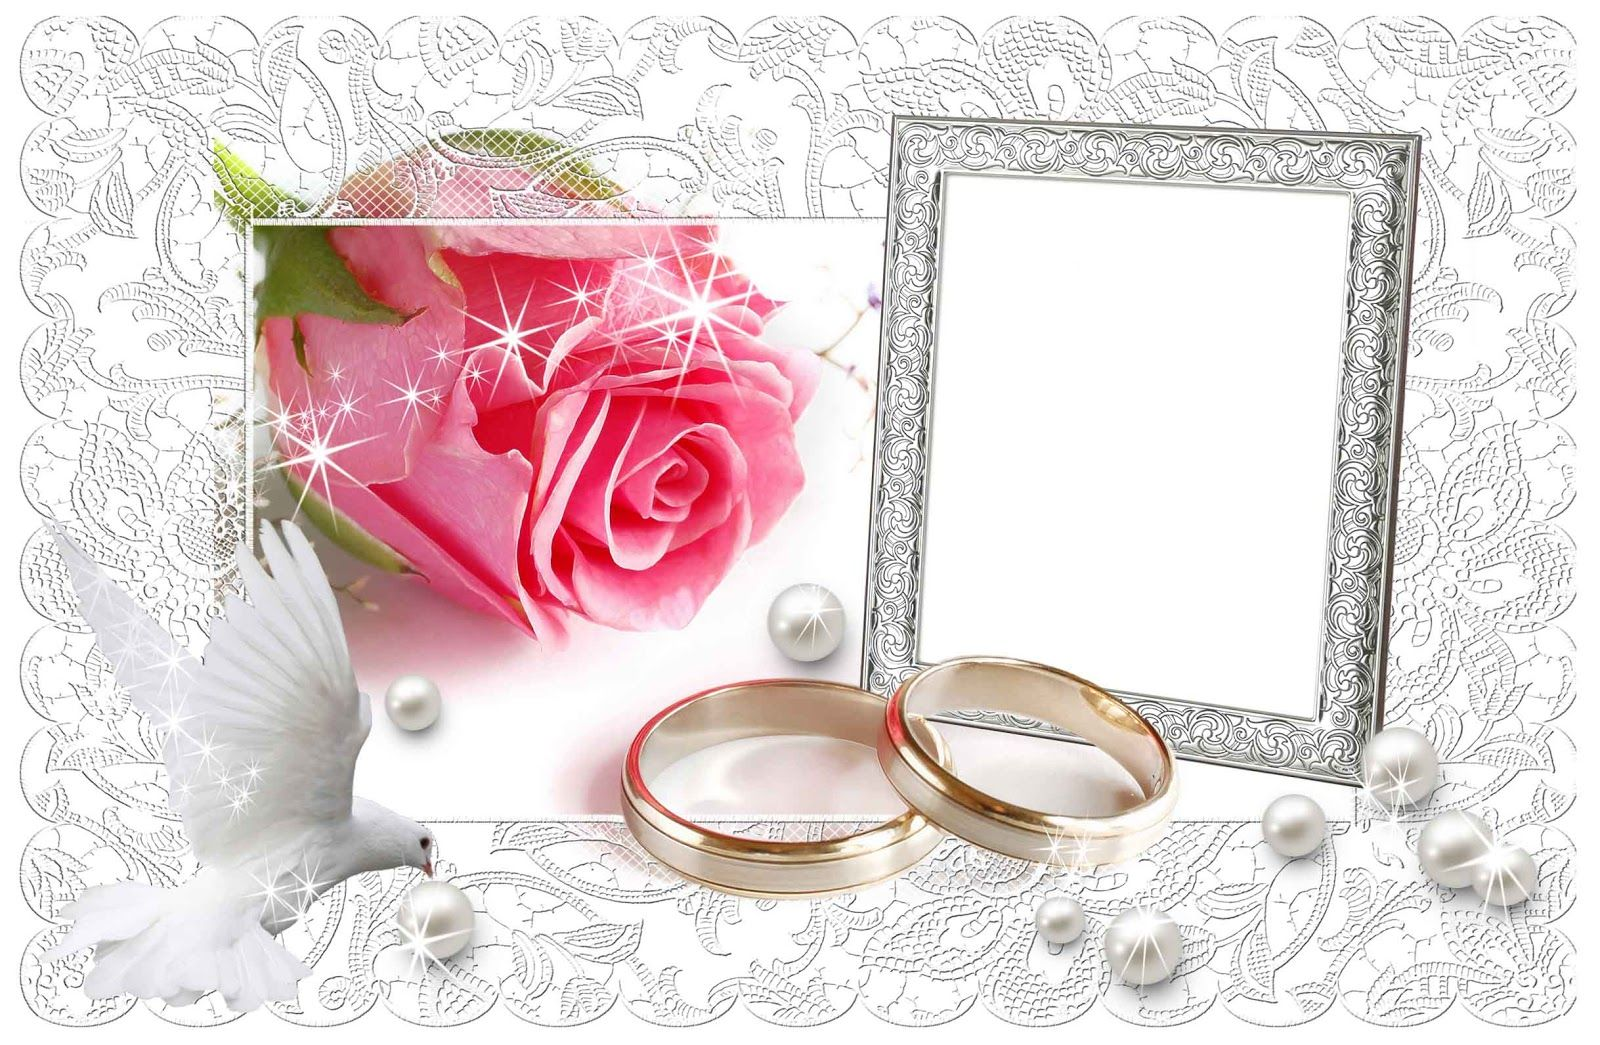 31 Awesome wedding frames png free download | Weddings | Pinterest